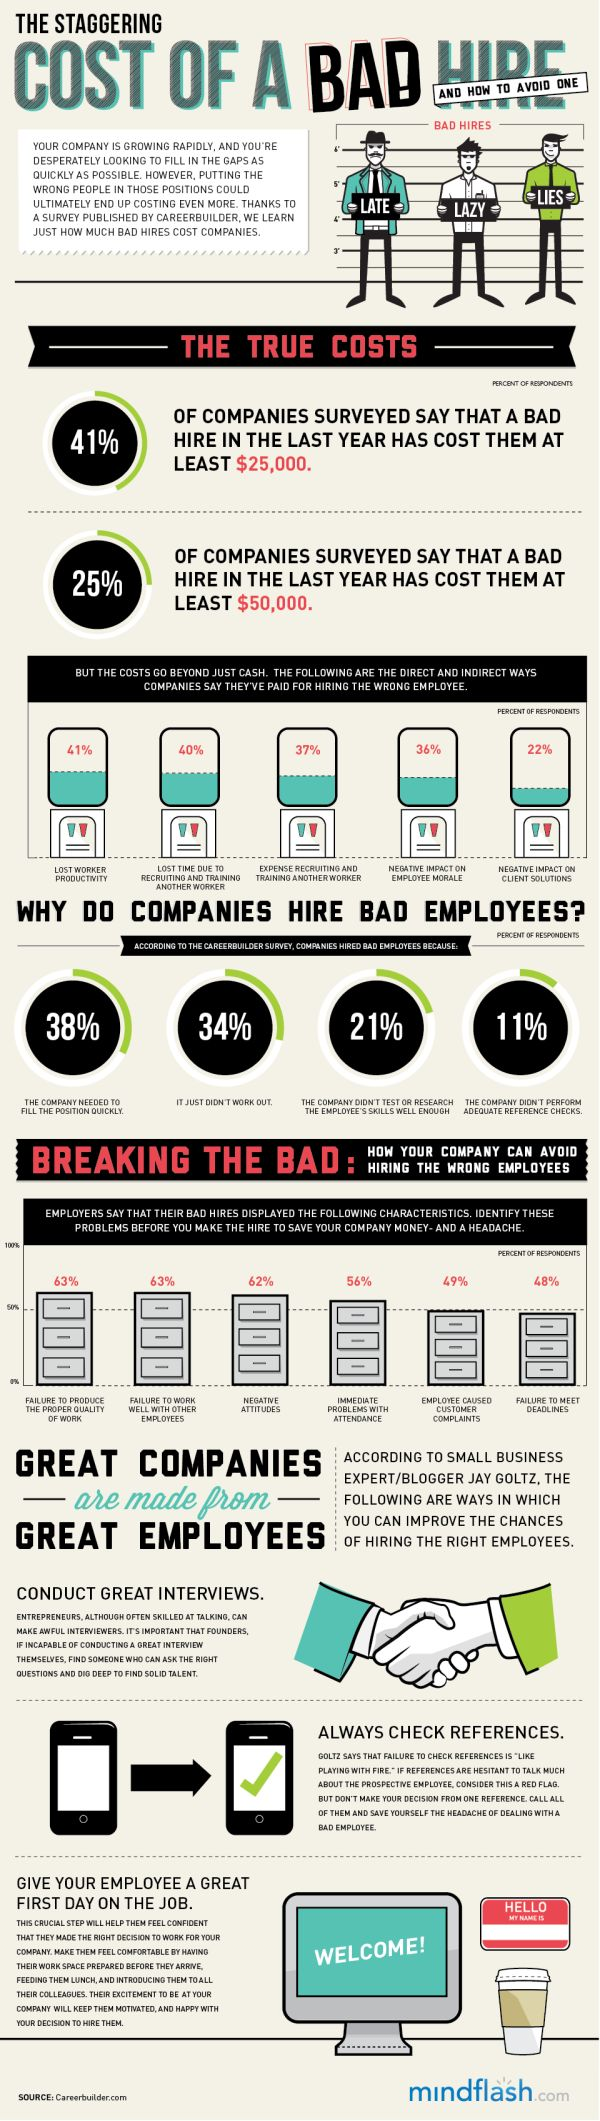 7 best Corporate Resources images on Pinterest | Business, Arm and ...